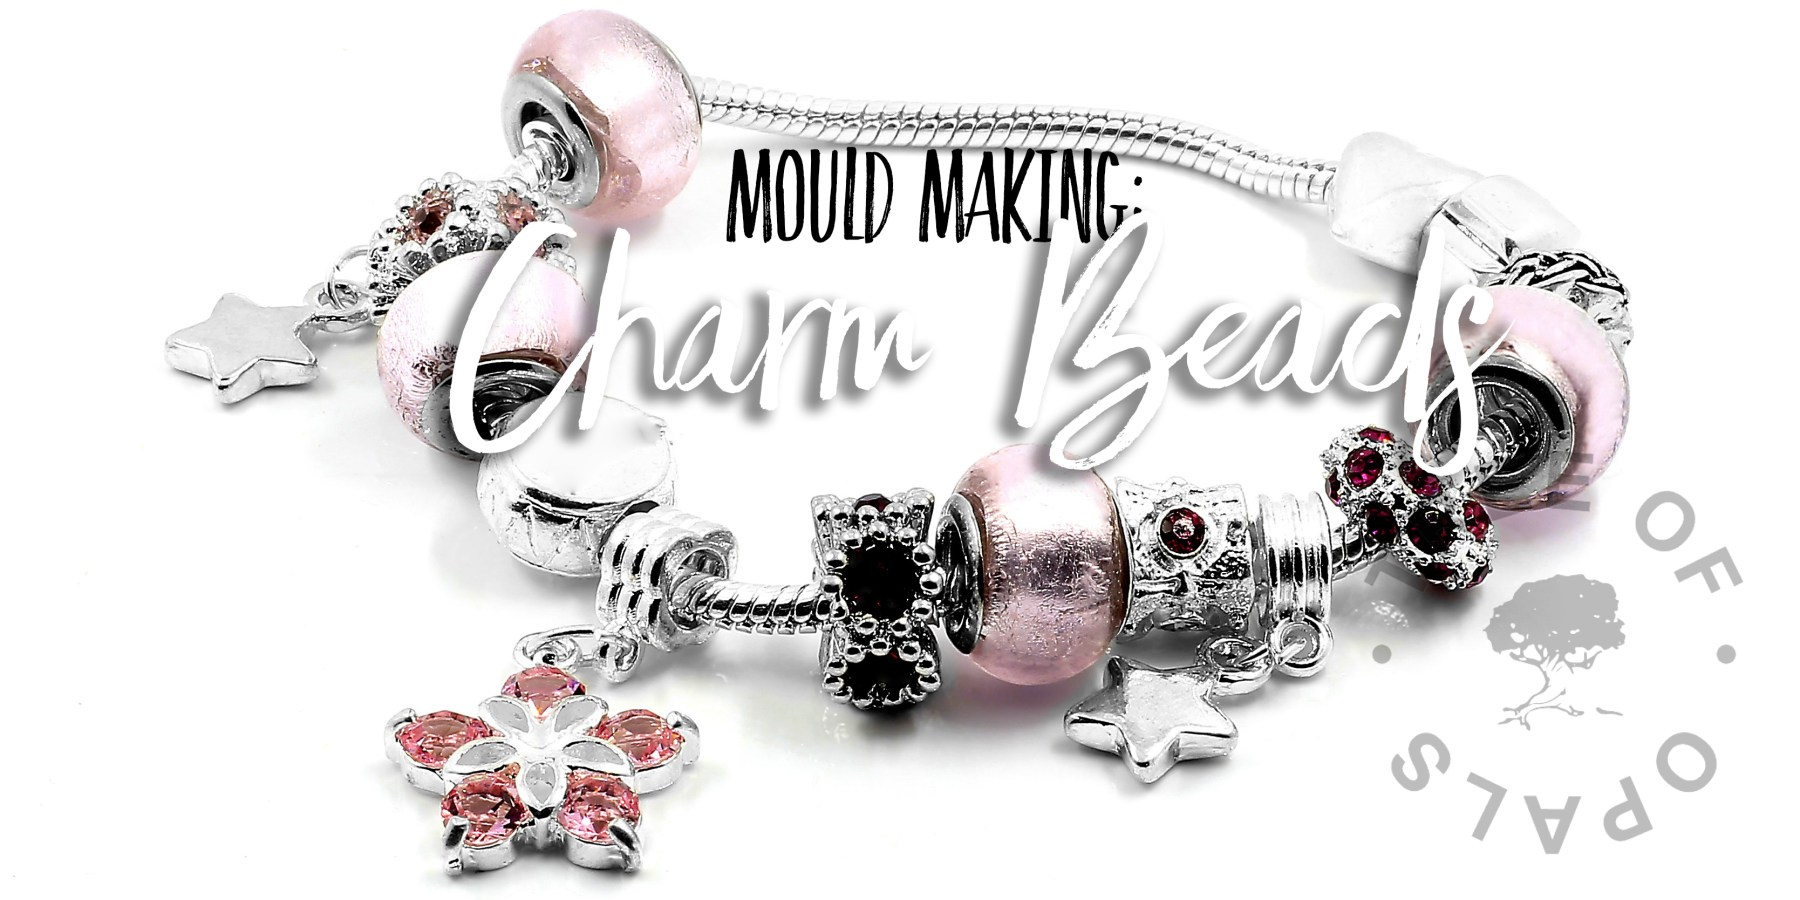 making moulds charm beads for European bracelets like Pandora, charms to be made with resin